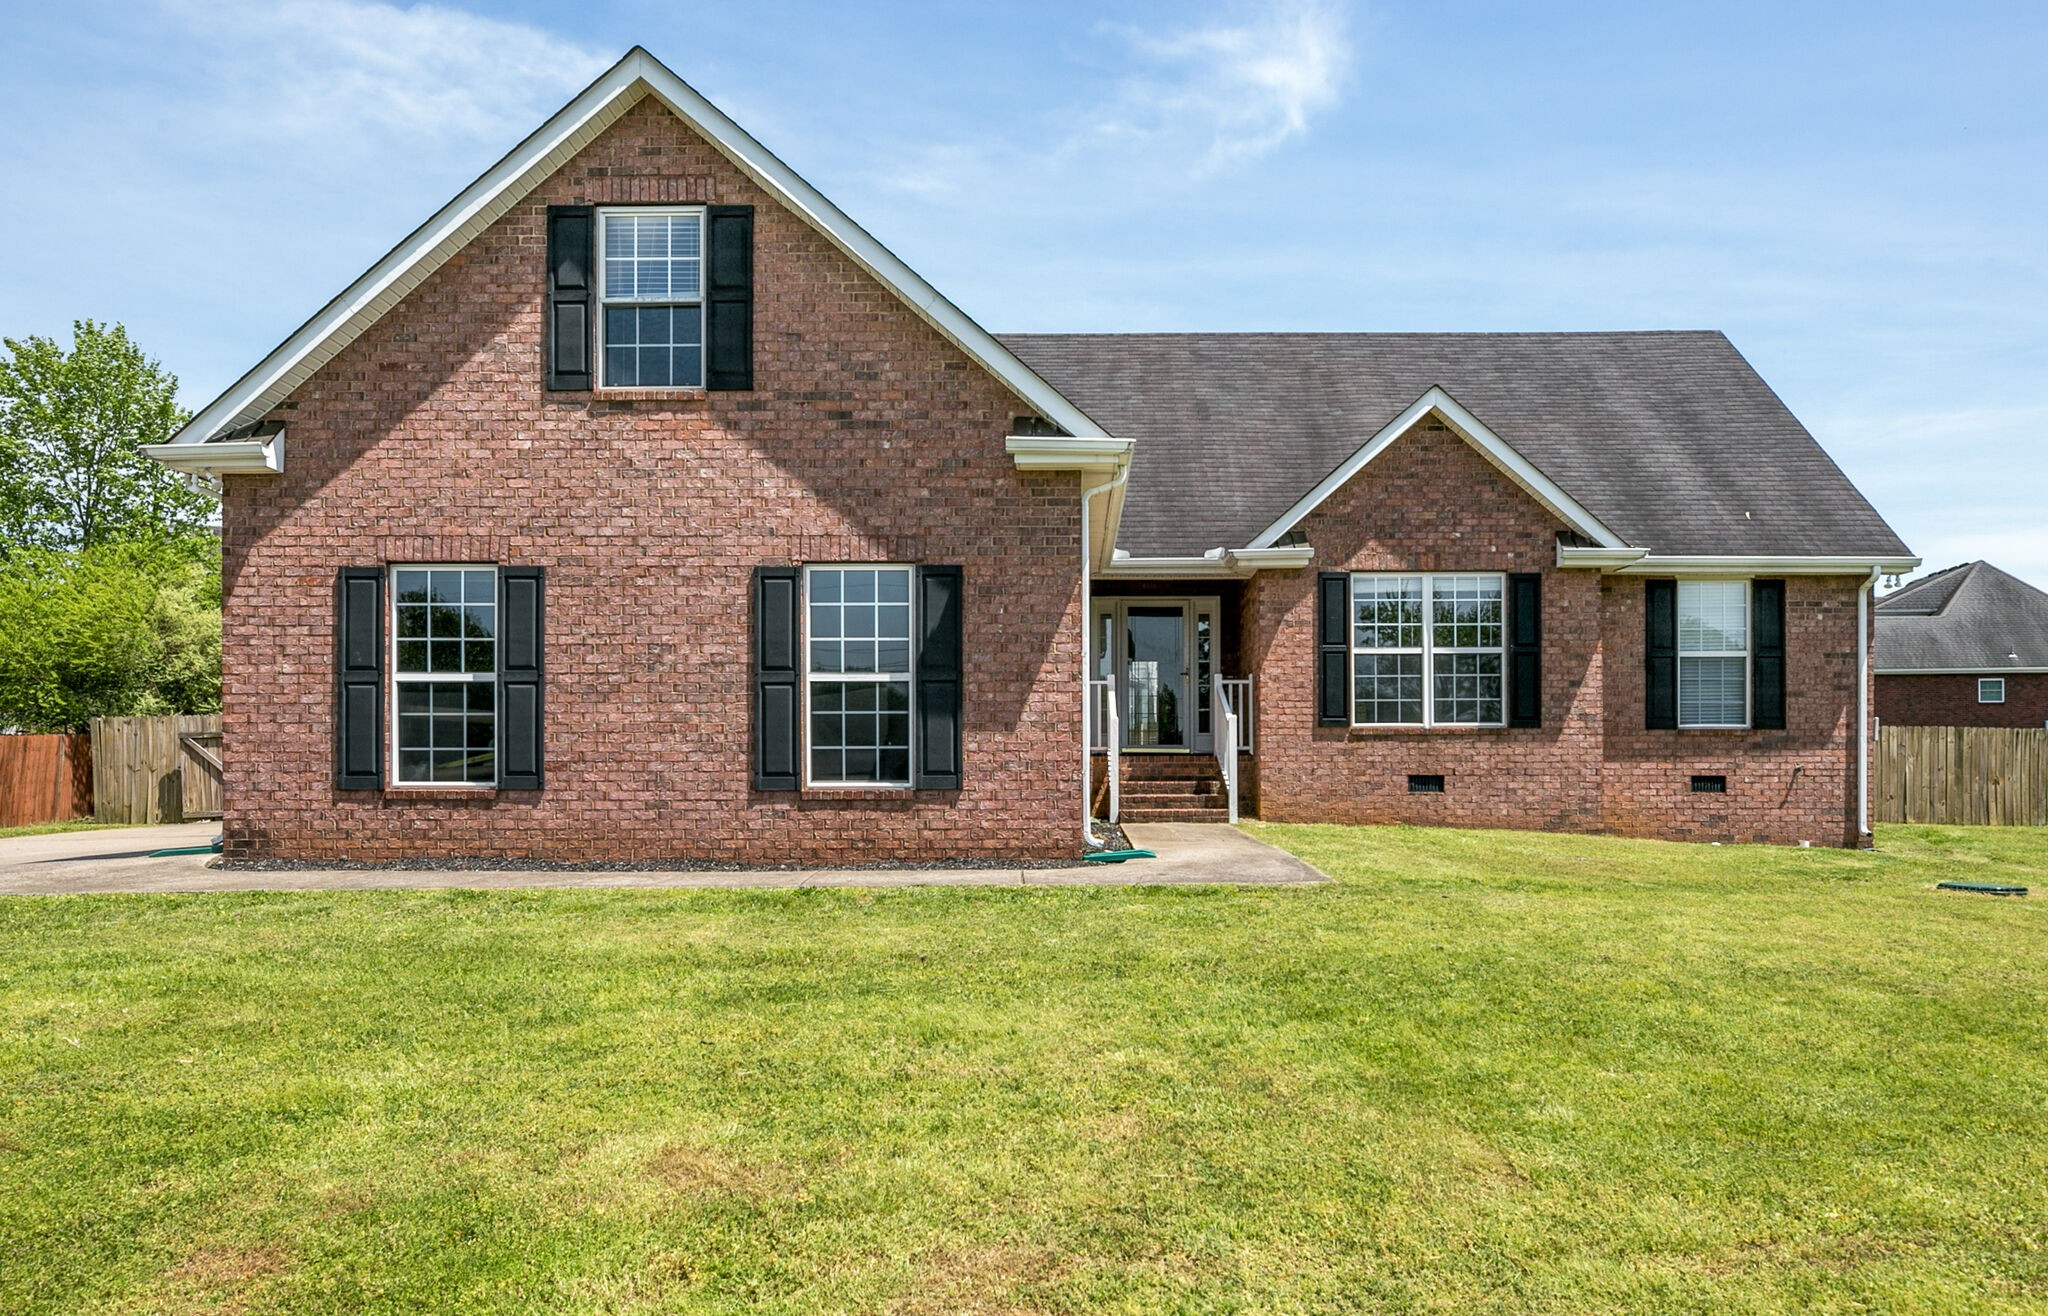 113 Falling Branch Ct Property Photo - Murfreesboro, TN real estate listing